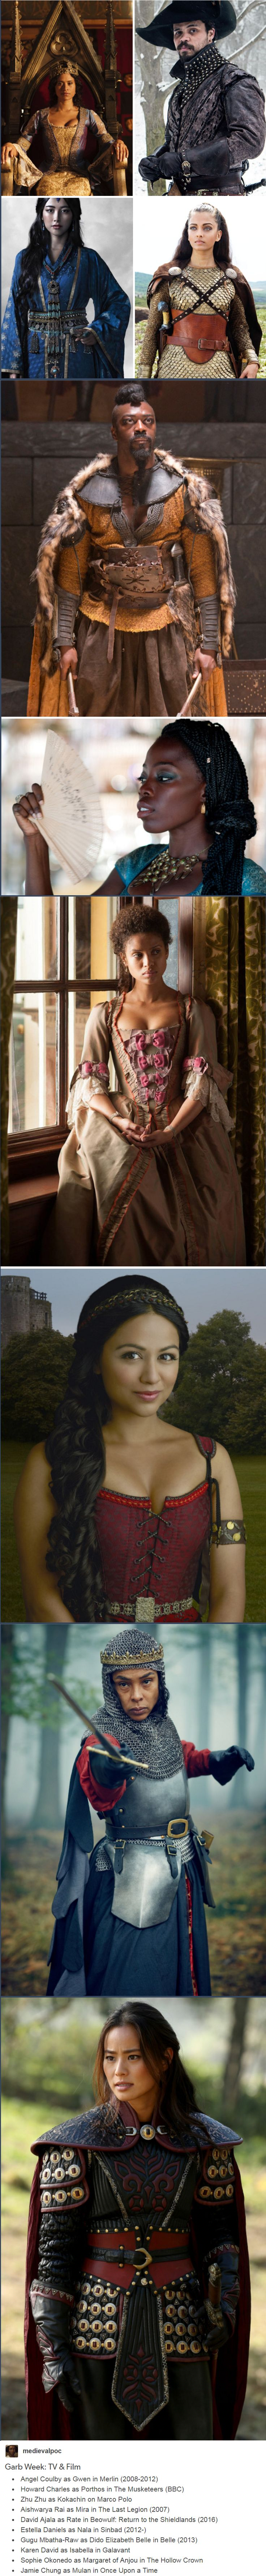 Garb Week: TV & Film Angel Coulby as Gwen in Merlin (2008-2012) Howard Charles as Porthos in The Musketeers (BBC) Zhu Zhu as Kokachin on Marco Polo Aishwarya Rai as Mira in The Last Legion (2007) David Ajala as Rate in Beowulf: Return to the Shieldlands (2016) Estella Daniels as Nala in Sinbad (2012-) Gugu Mbatha-Raw as Dido Elizabeth Belle in Belle (2013) Karen David as Isabella in Galavant Sophie Okonedo as Margaret of Anjou in The Hollow Crown Jamie Chung as Mulan in Once Upon a Tim